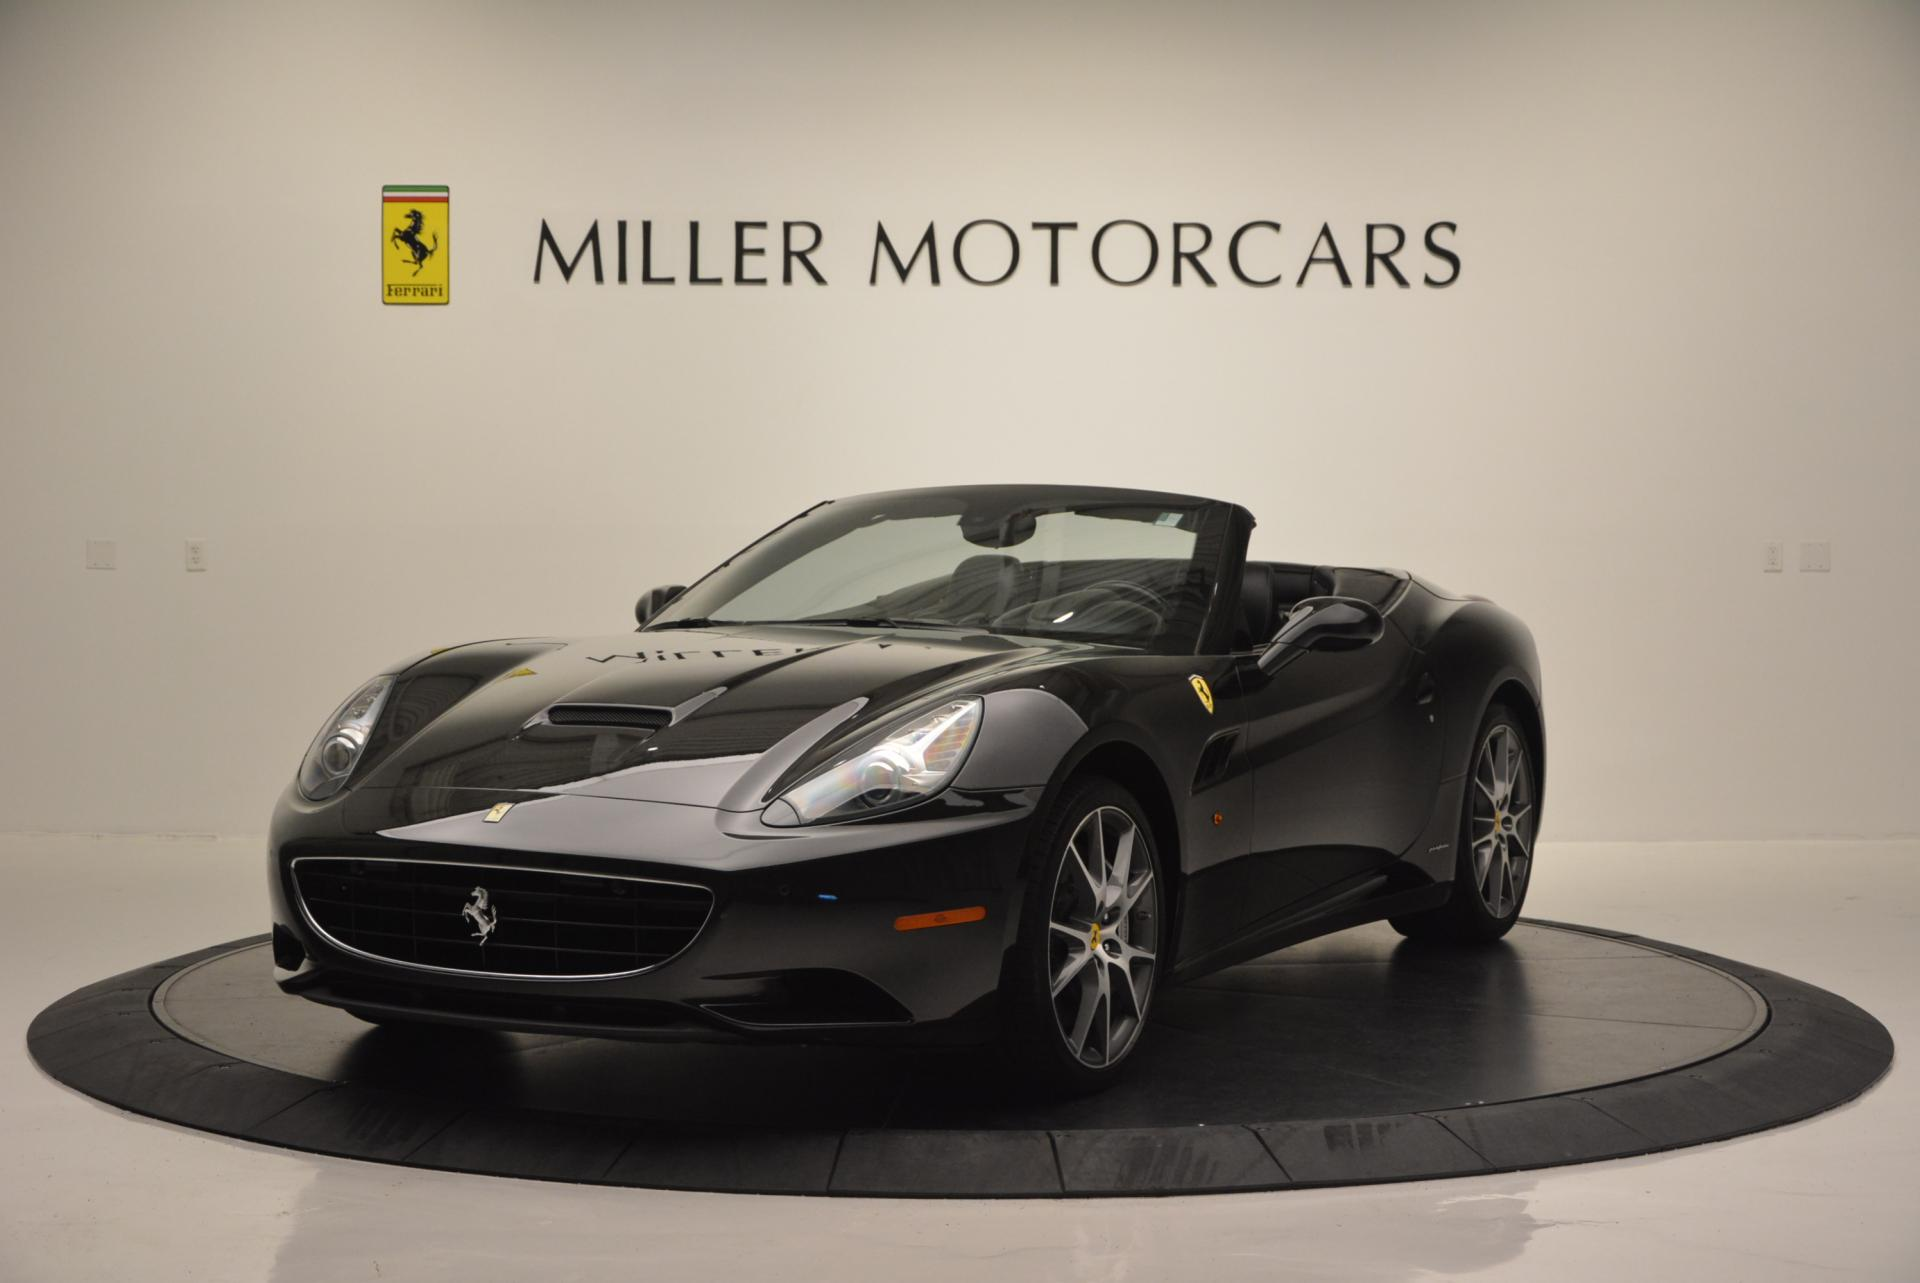 Used 2012 Ferrari California for sale Sold at Bugatti of Greenwich in Greenwich CT 06830 1